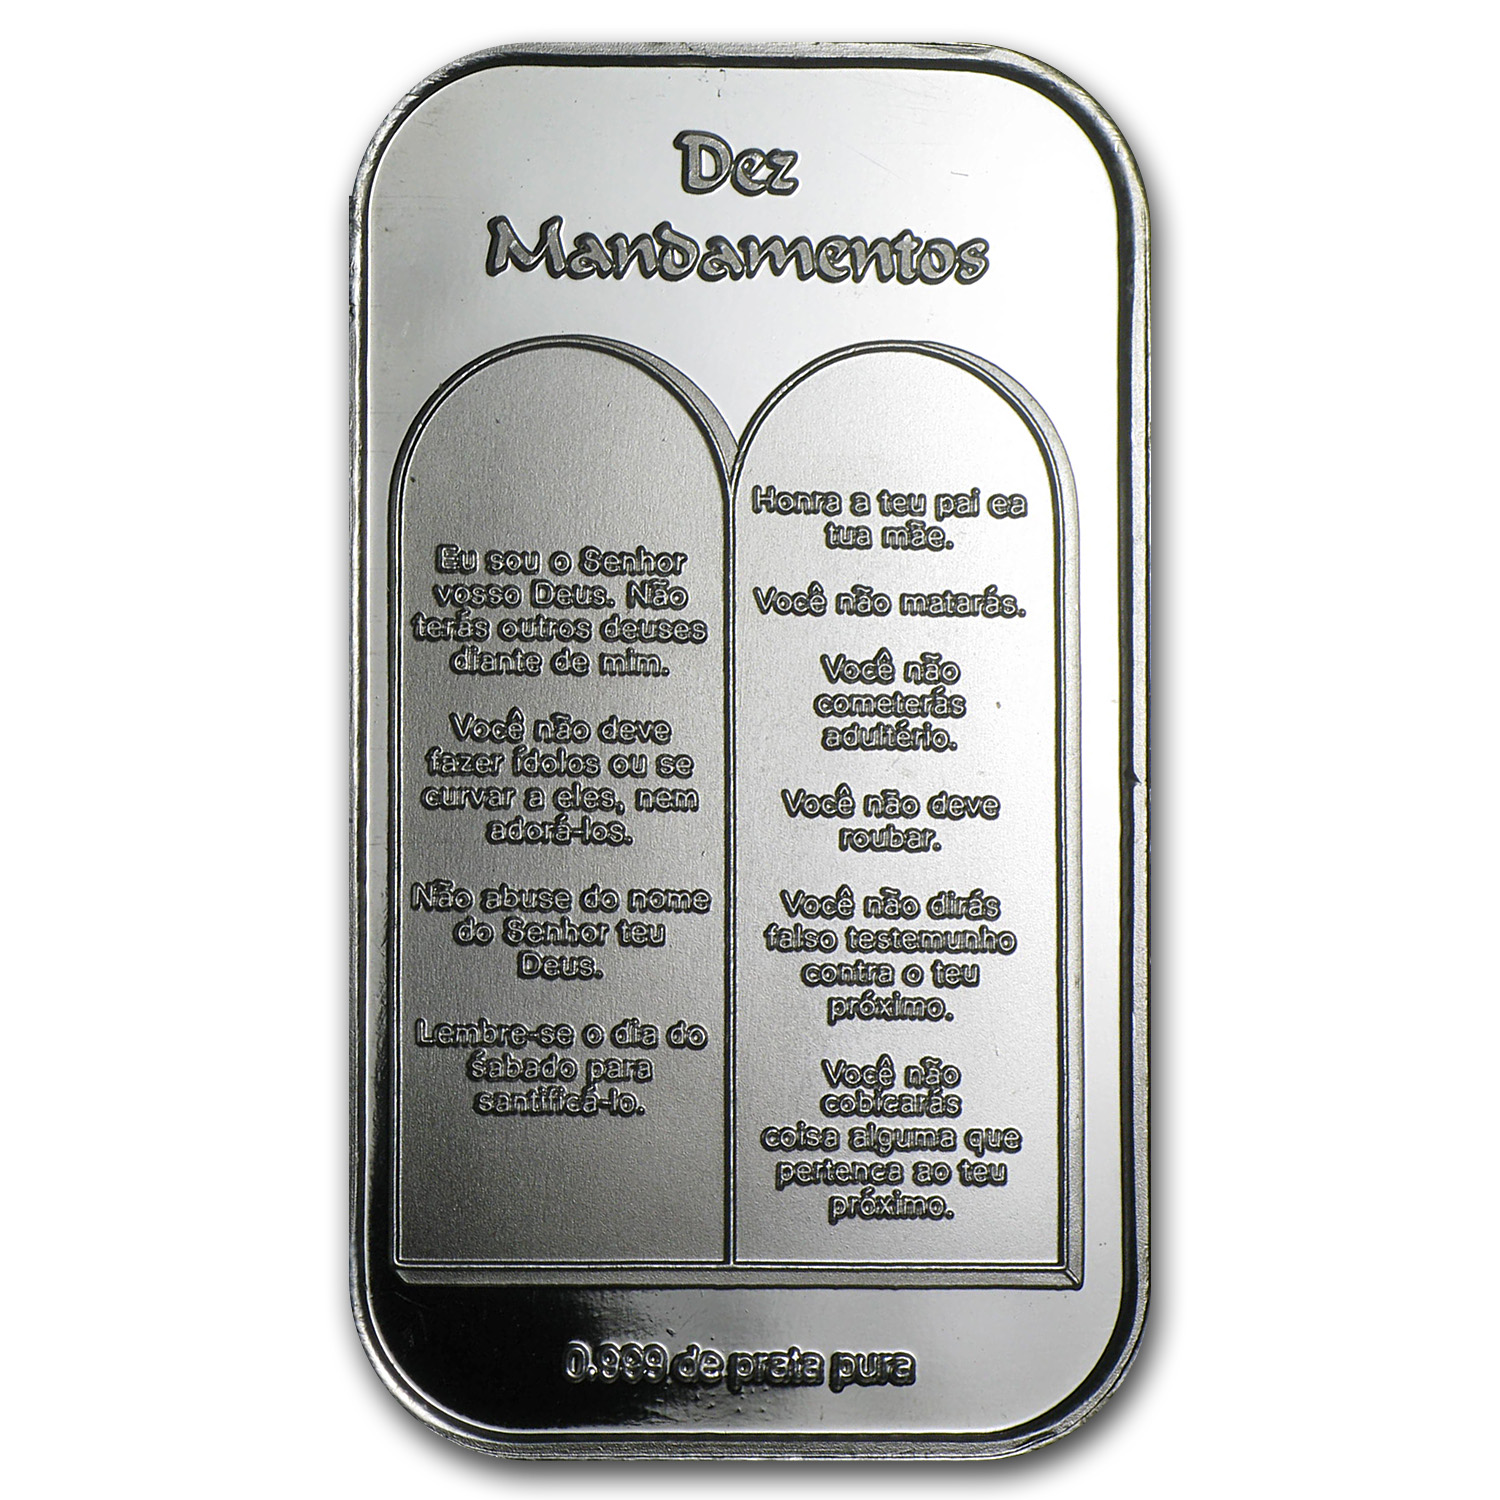 1 oz Silver Bars - Ten Commandments (Portuguese)